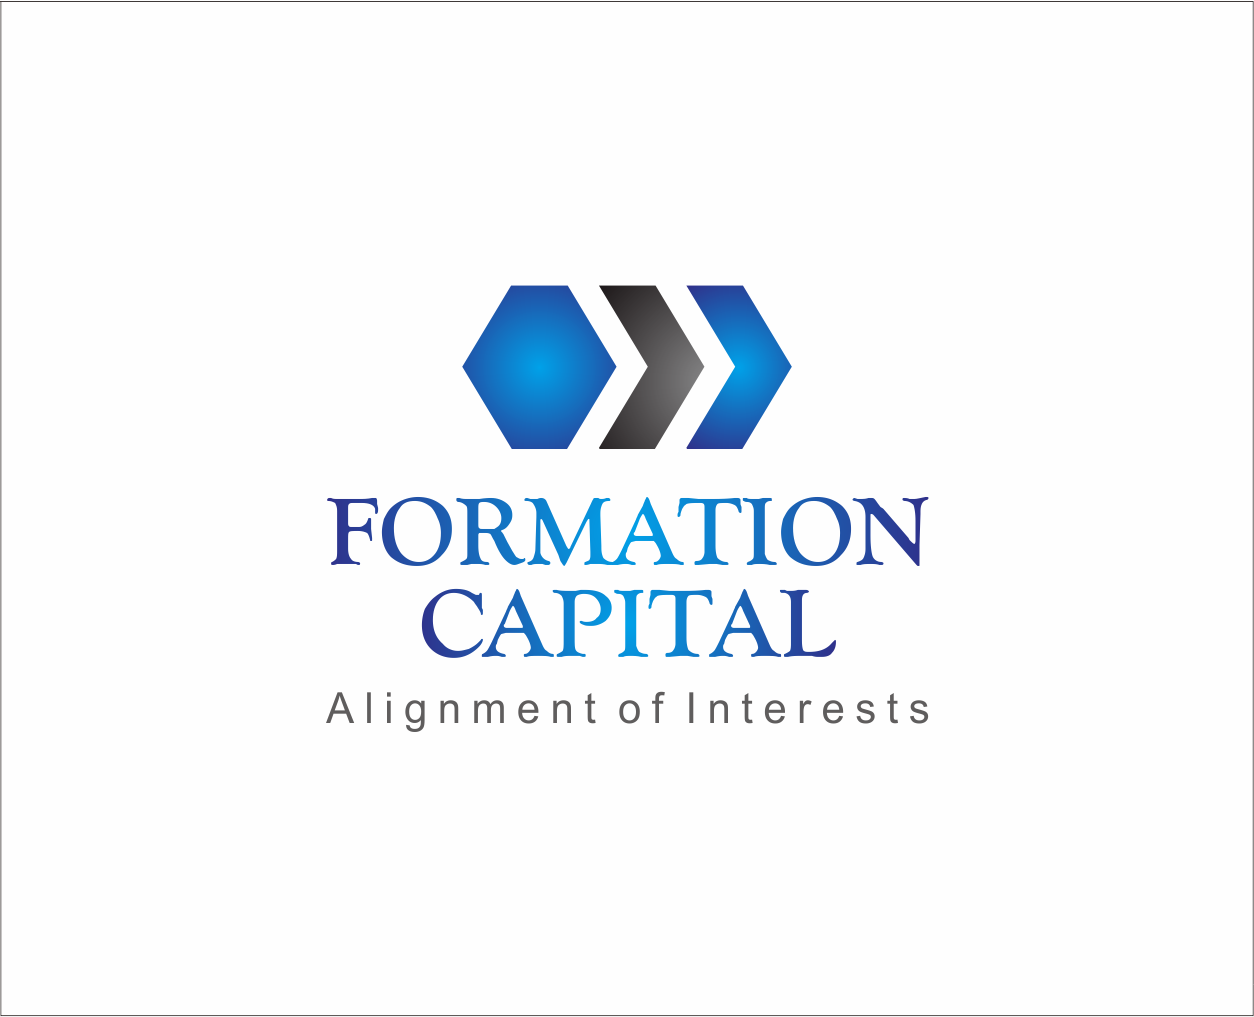 Logo Design by Armada Jamaluddin - Entry No. 200 in the Logo Design Contest Inspiring Logo Design for Formation Capital.